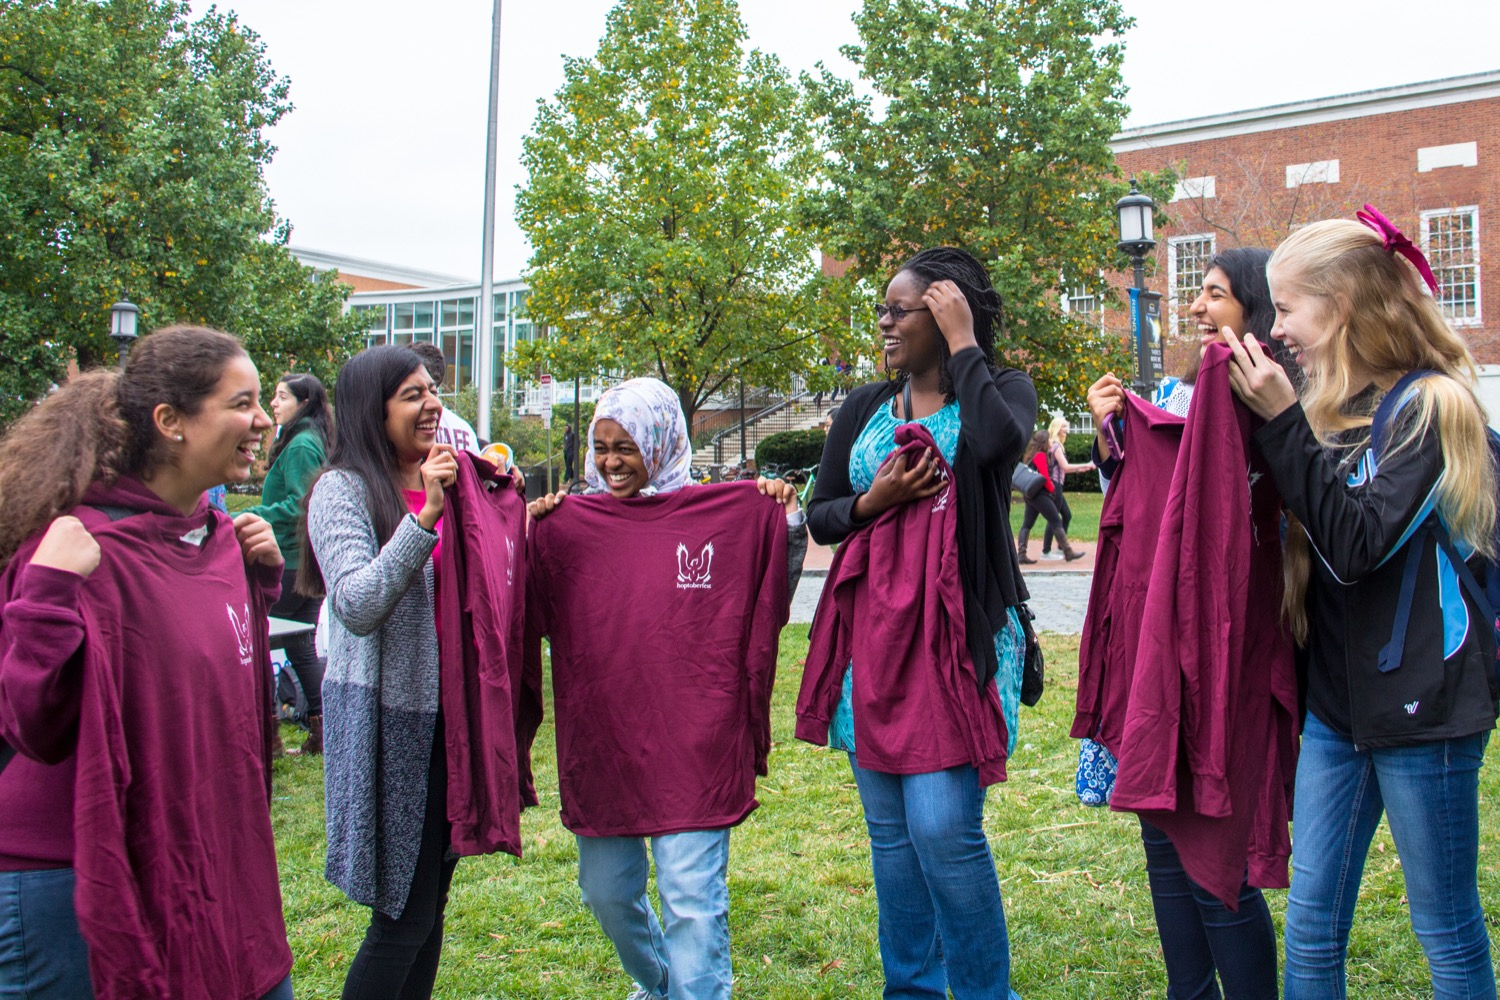 Students smiling, holding up t-shirts